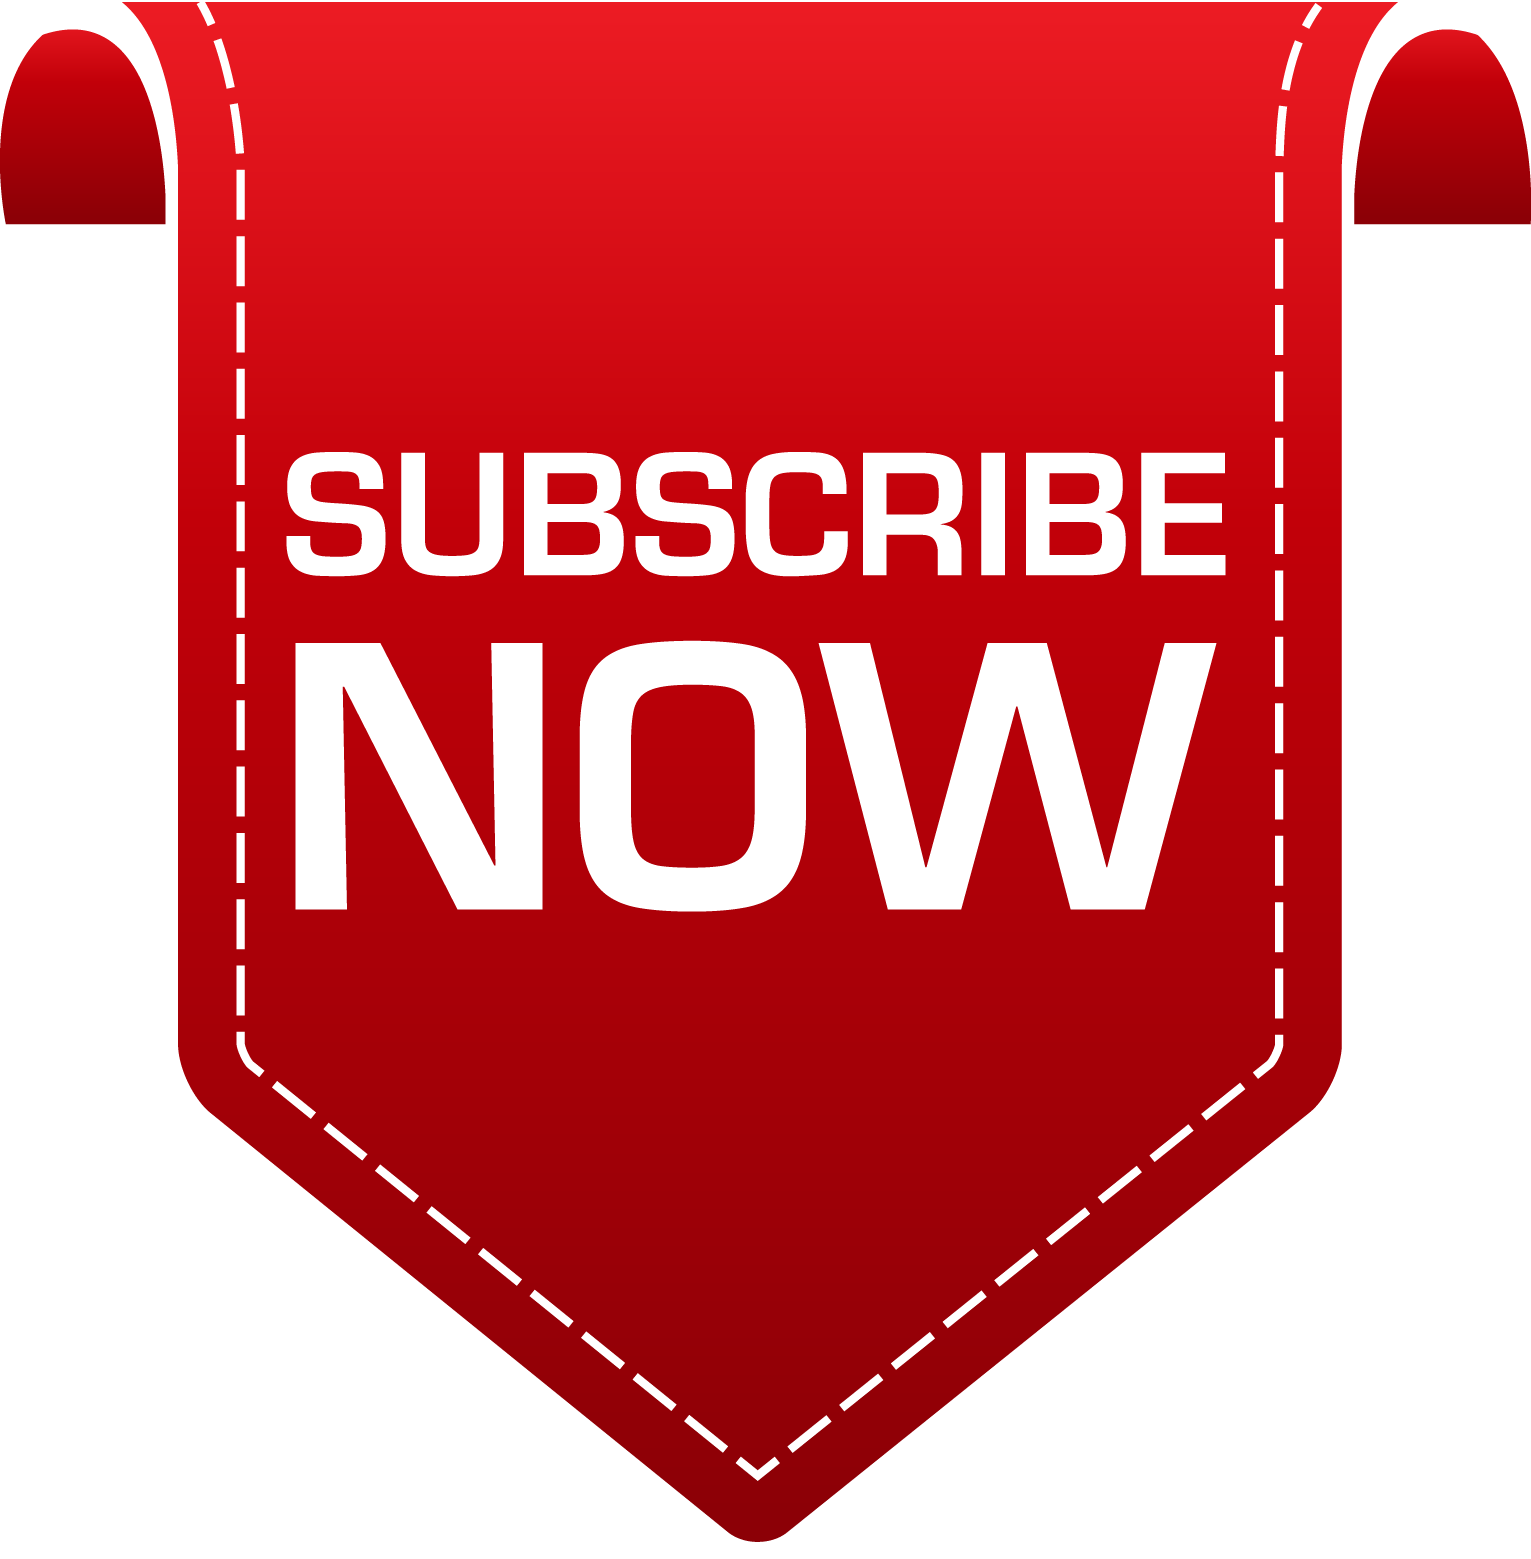 Subscribe PNG Transparent Images.